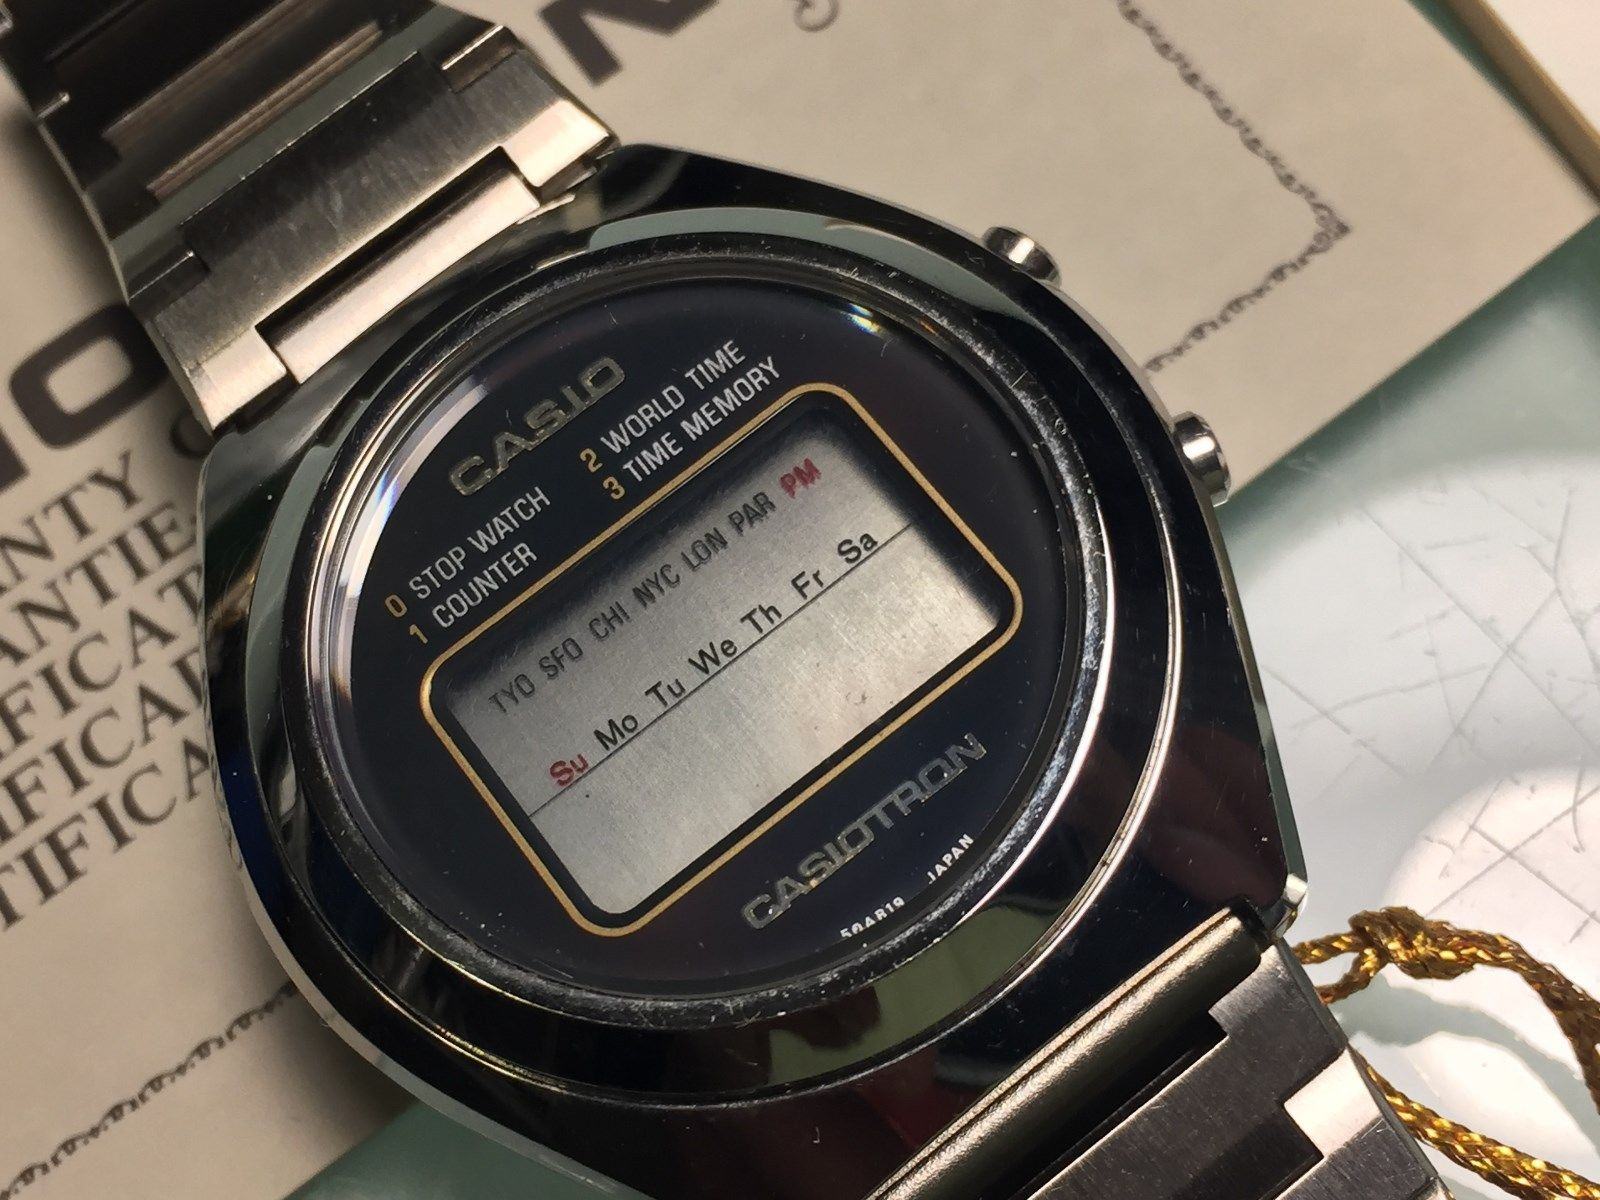 RARE CASIOTRON FIRST WORLD TIME WATCH MADE IN JAPAN